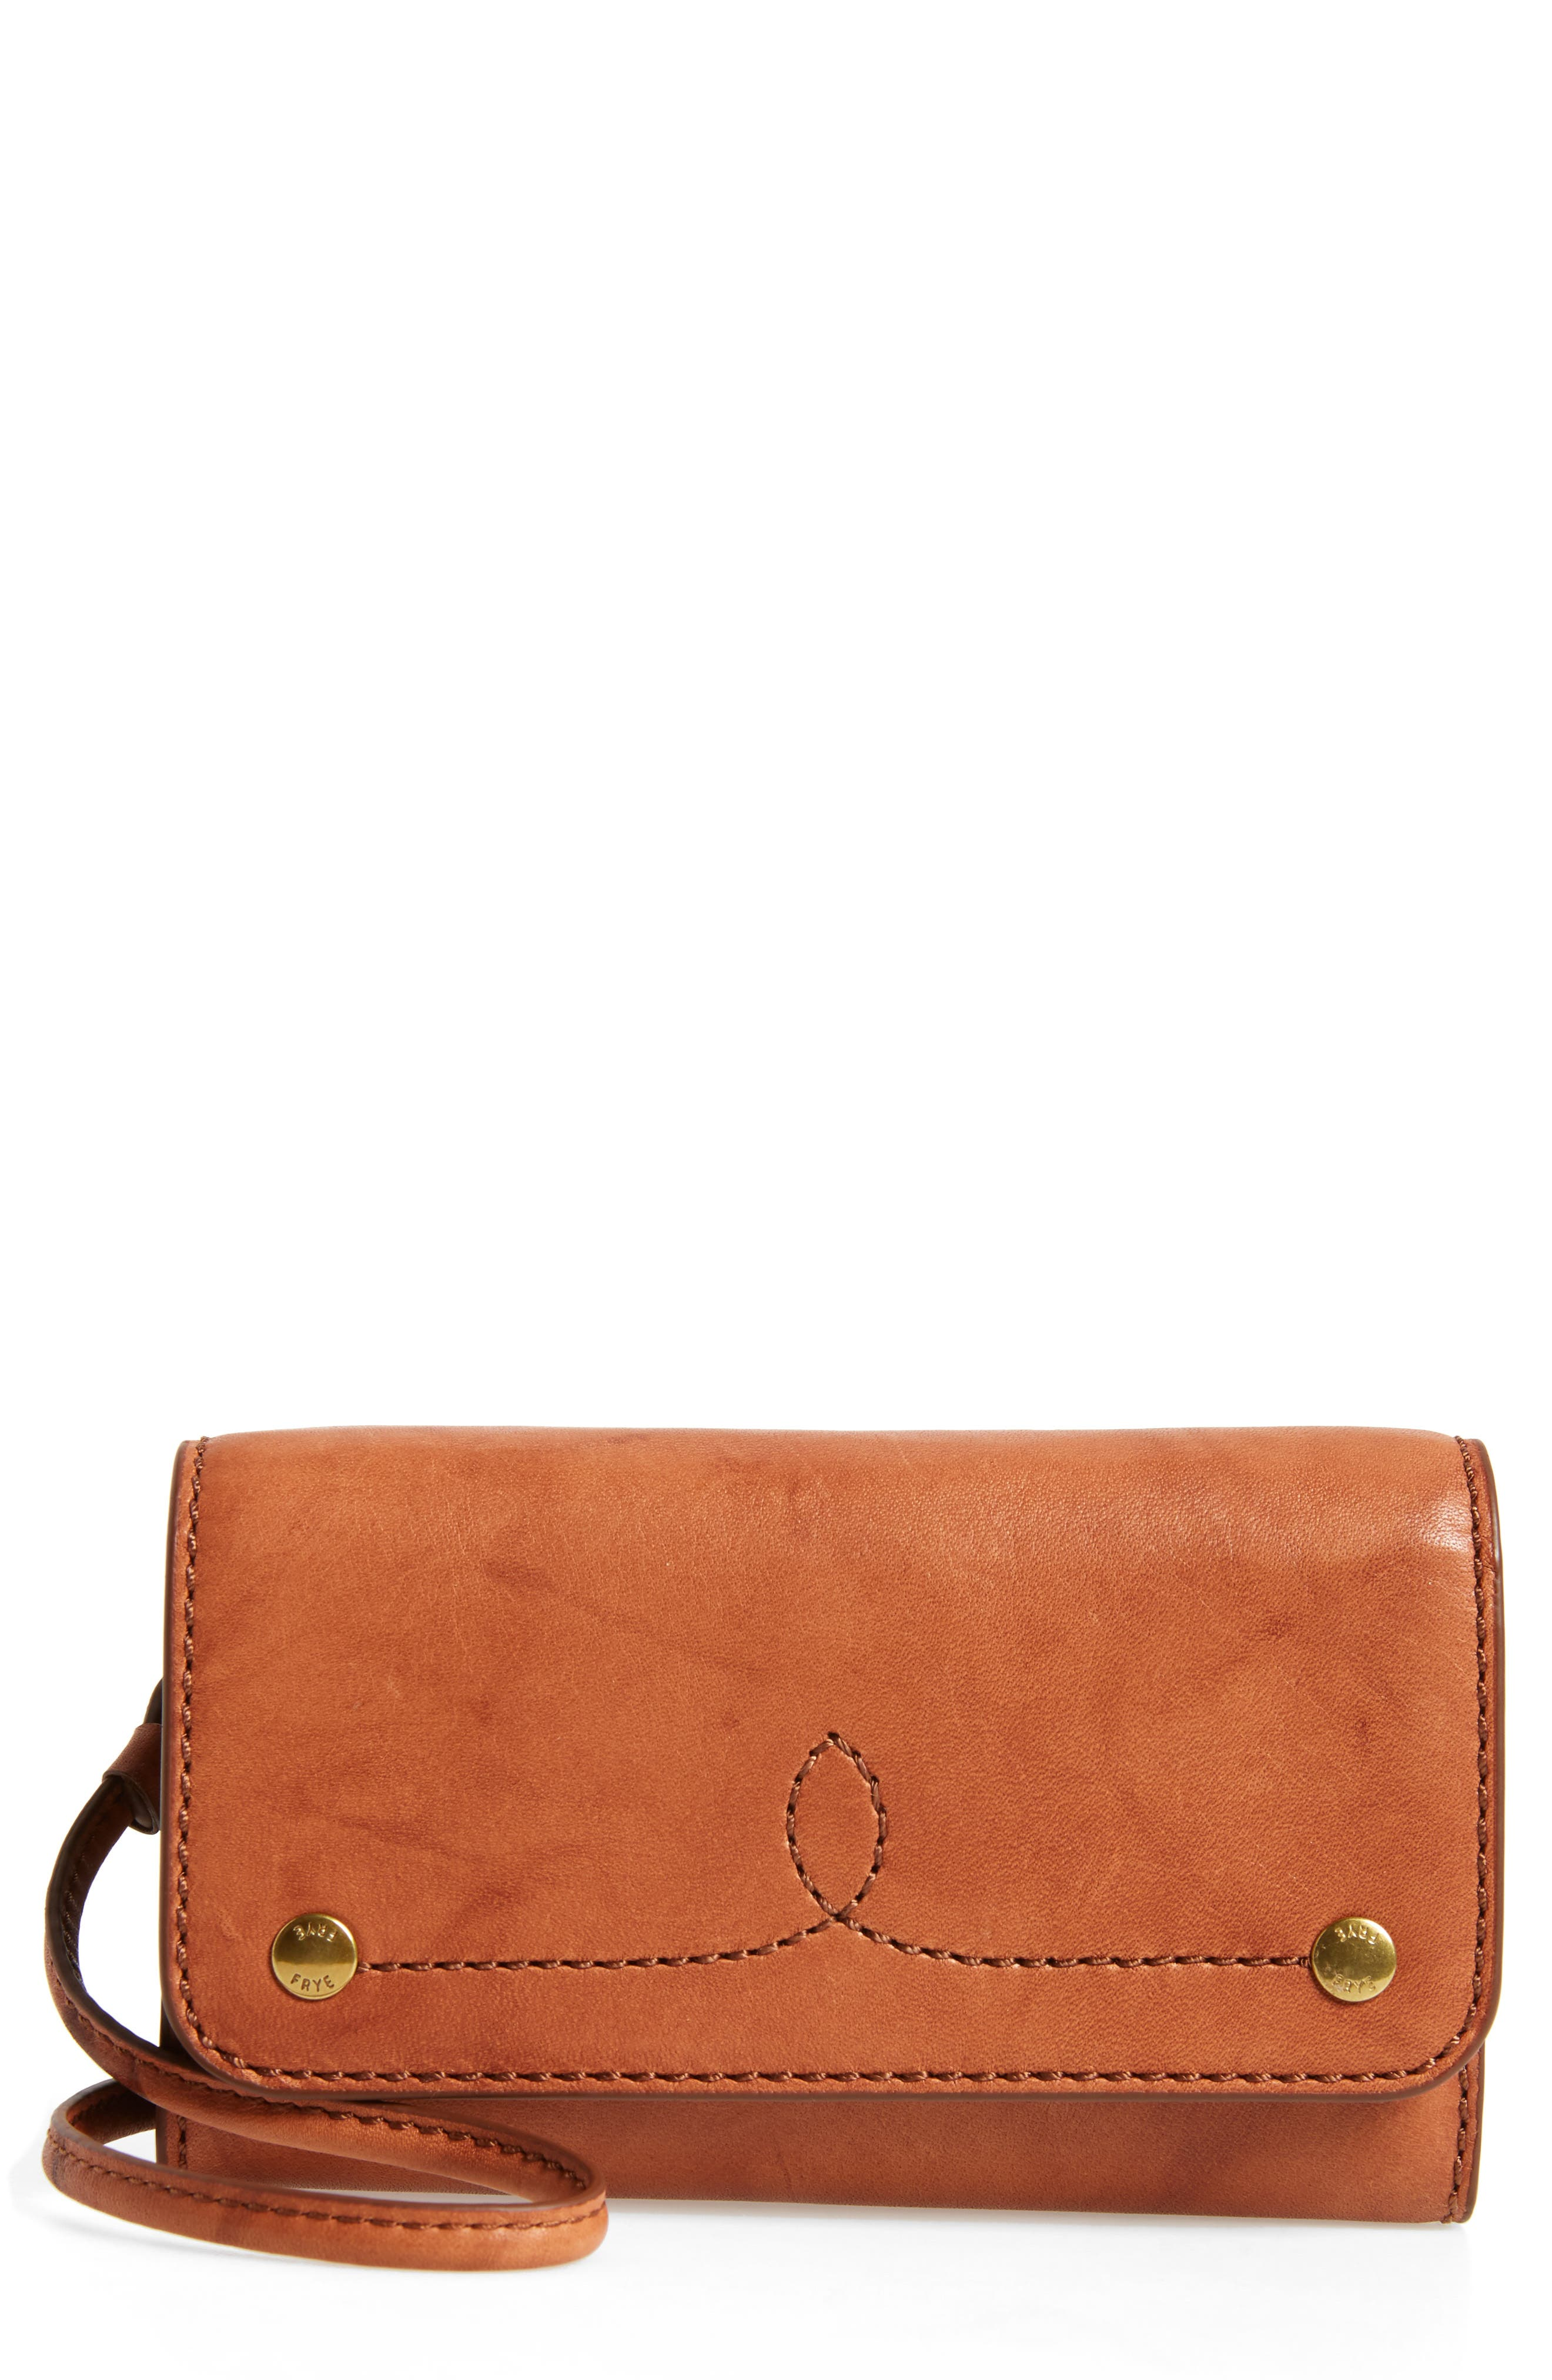 Campus Rivet Leather Smartphone Wallet with Crossbody Strap,                             Main thumbnail 2, color,